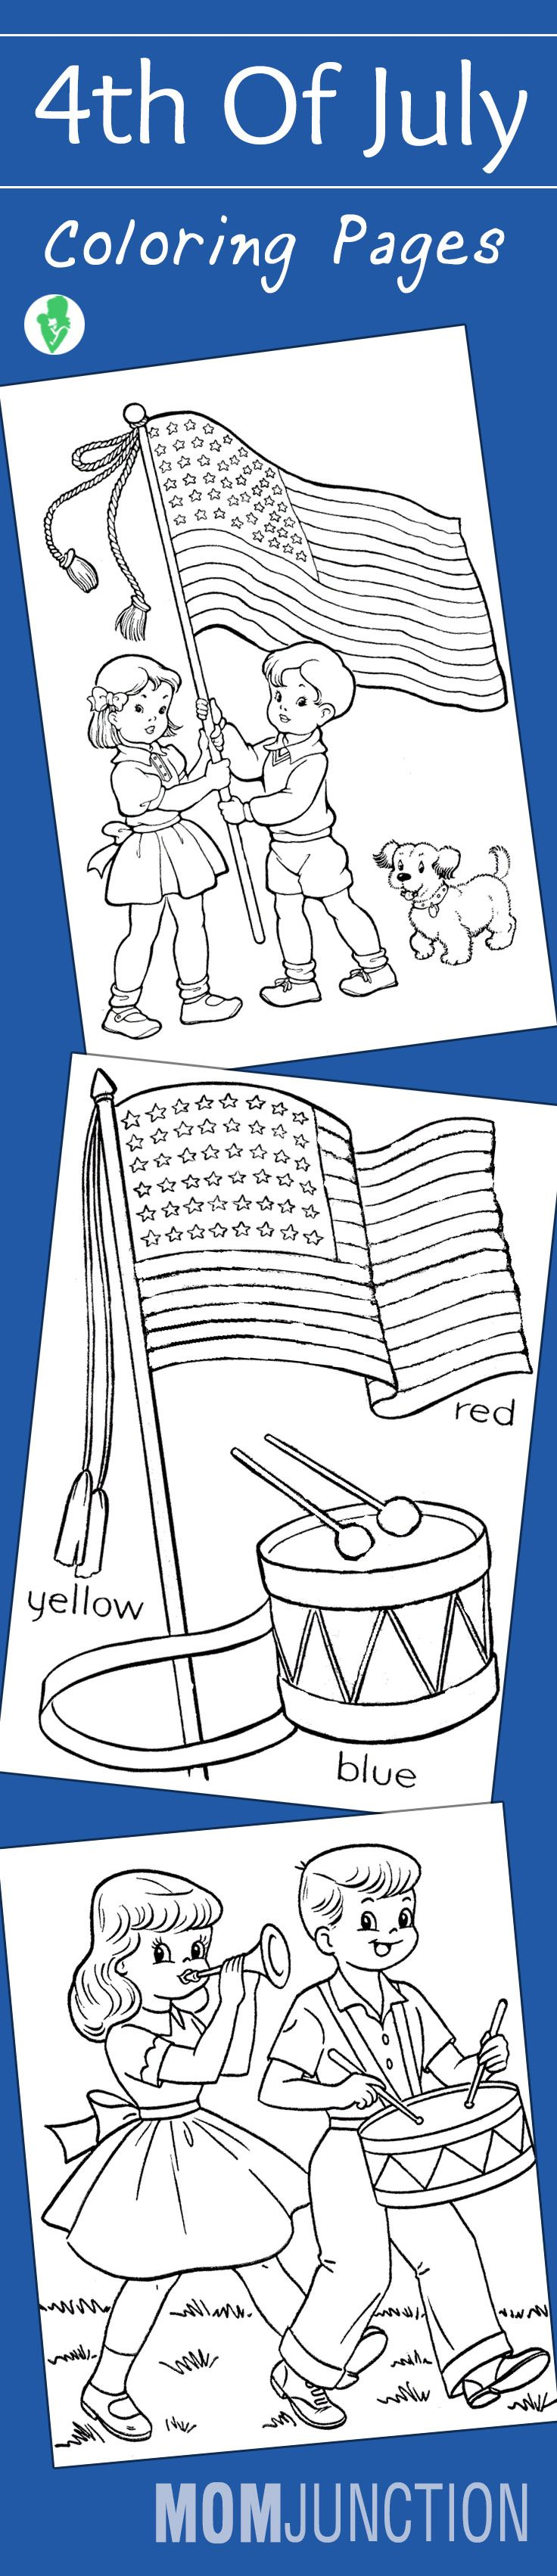 32 best independence day images on pinterest coloring pages for